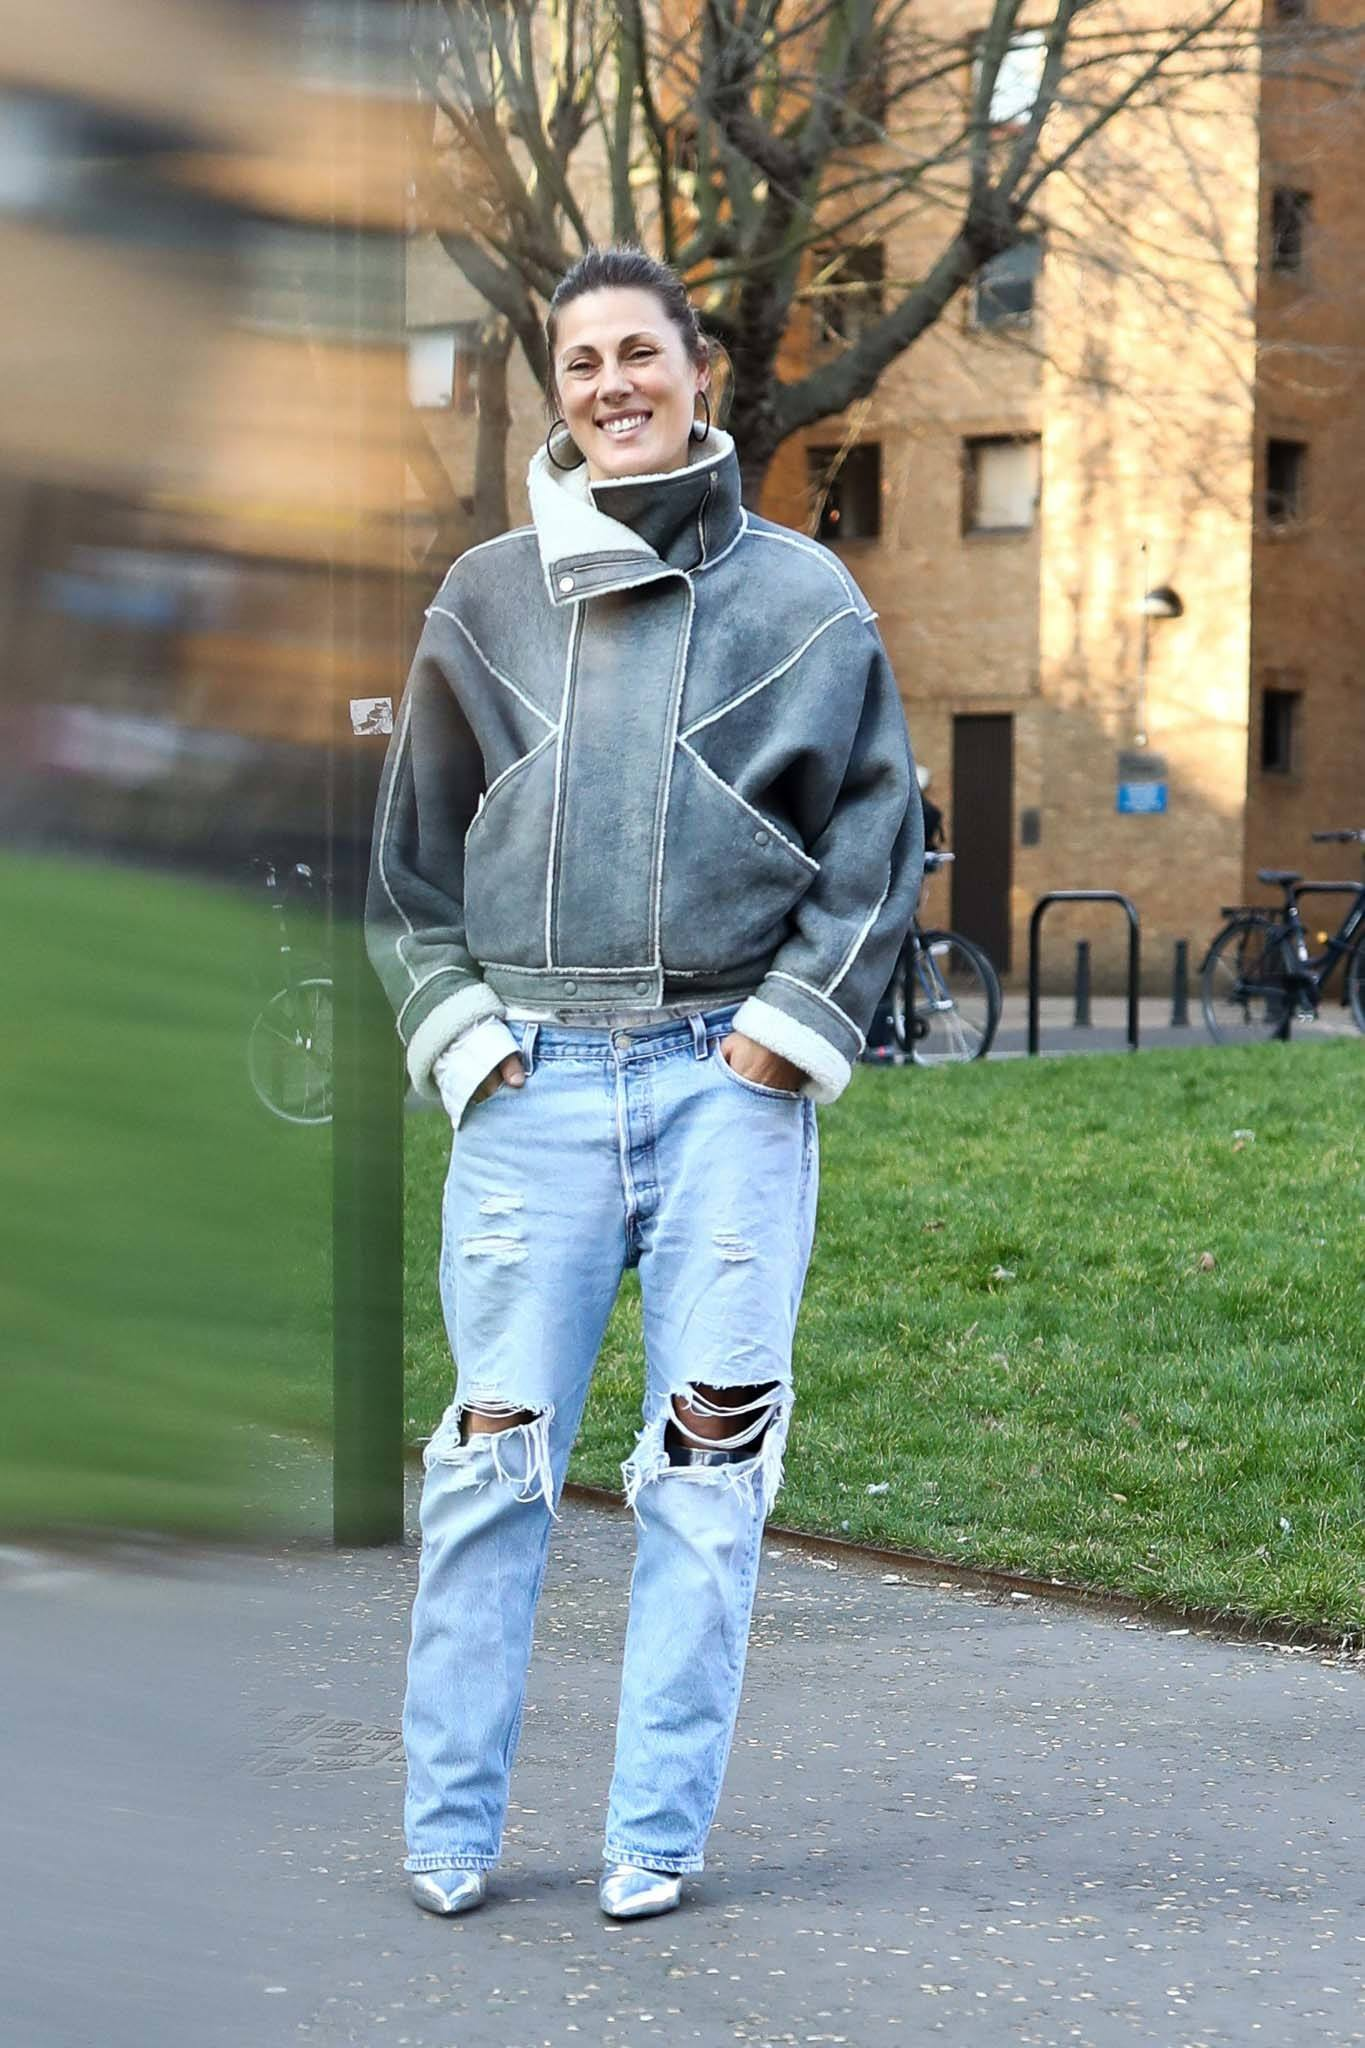 a woman standing in a city park wearing a denim outfits and a coat